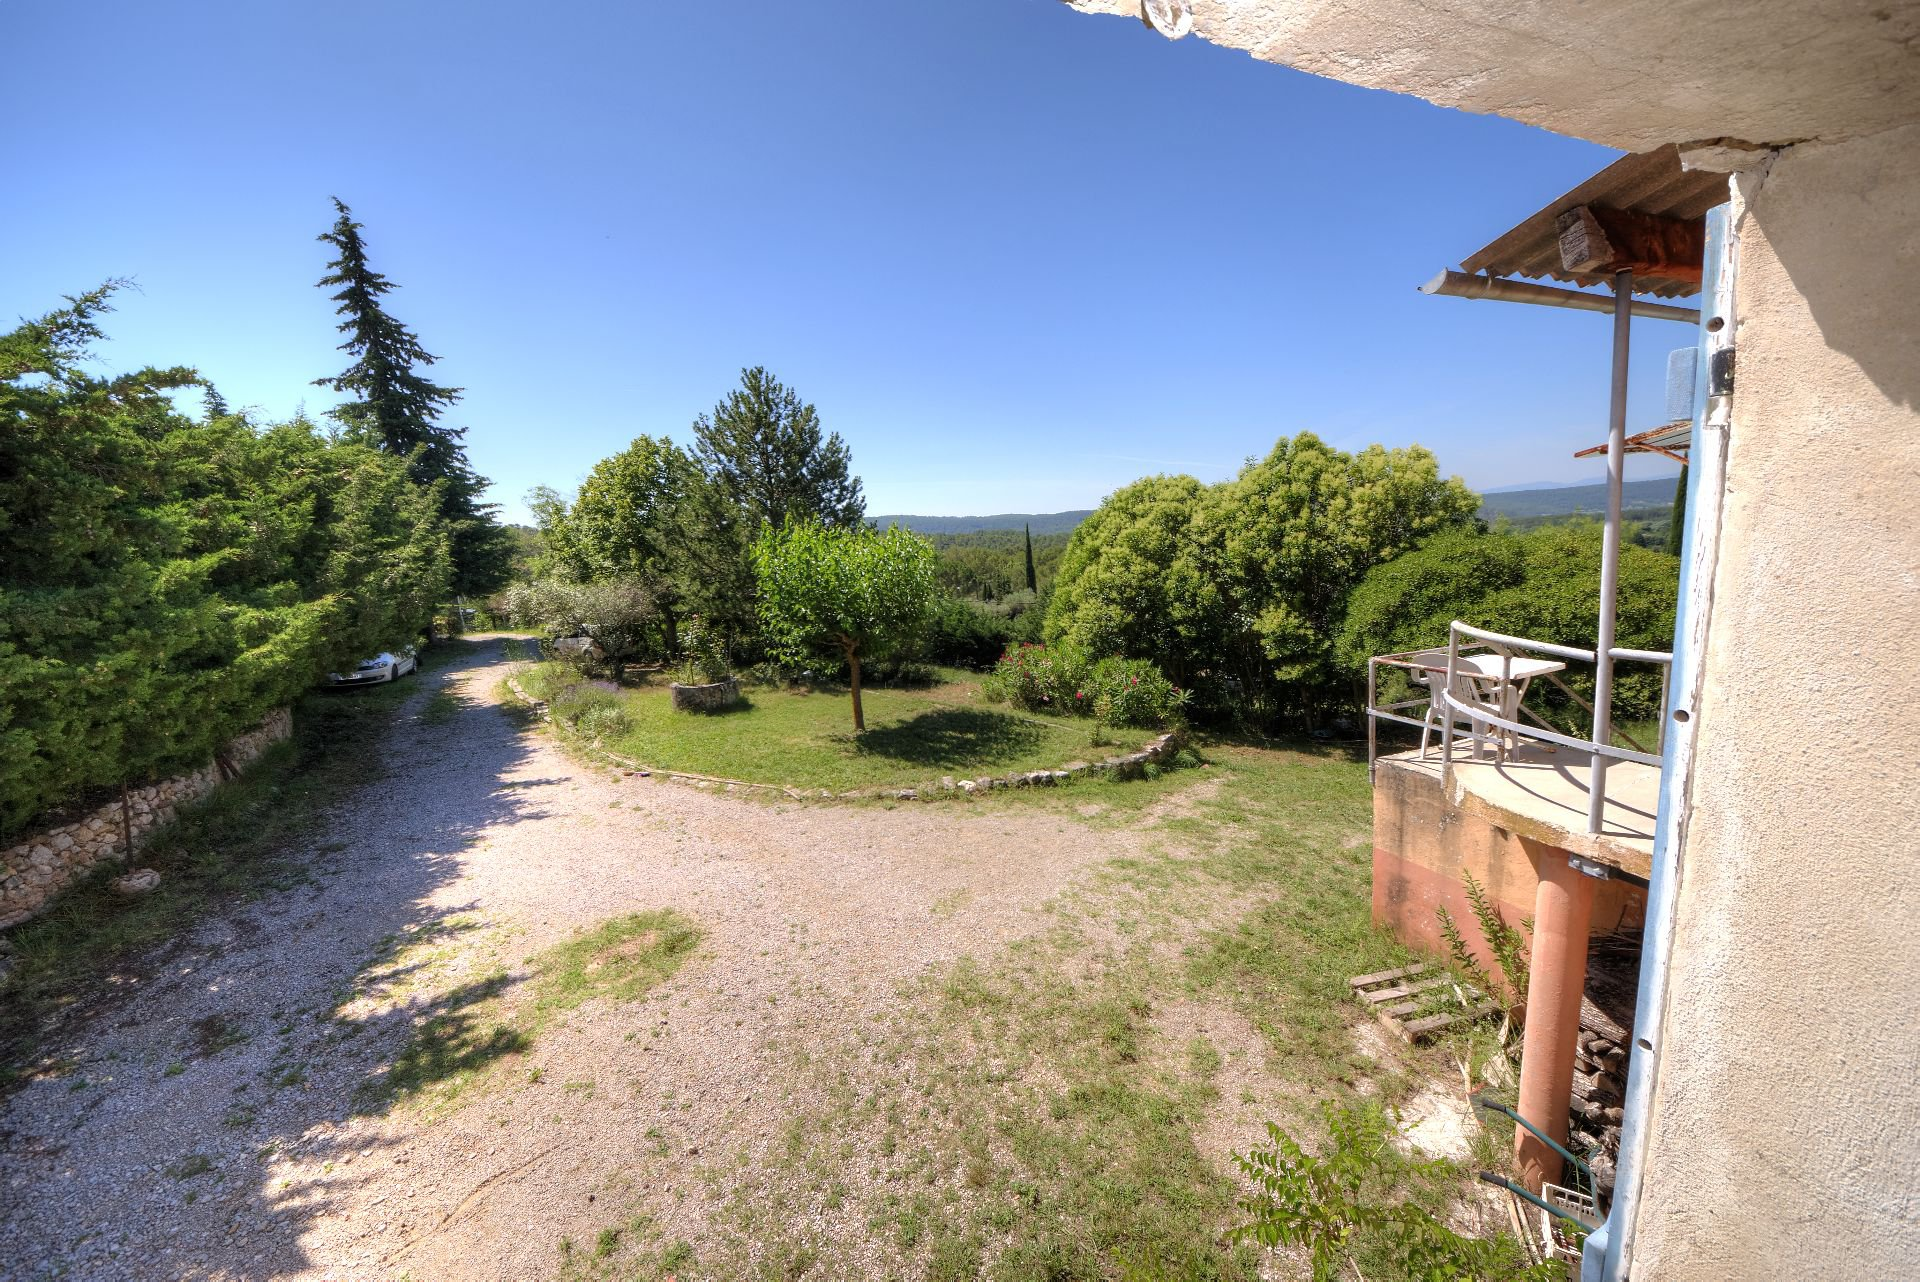 Nice environment for this provencal bastide